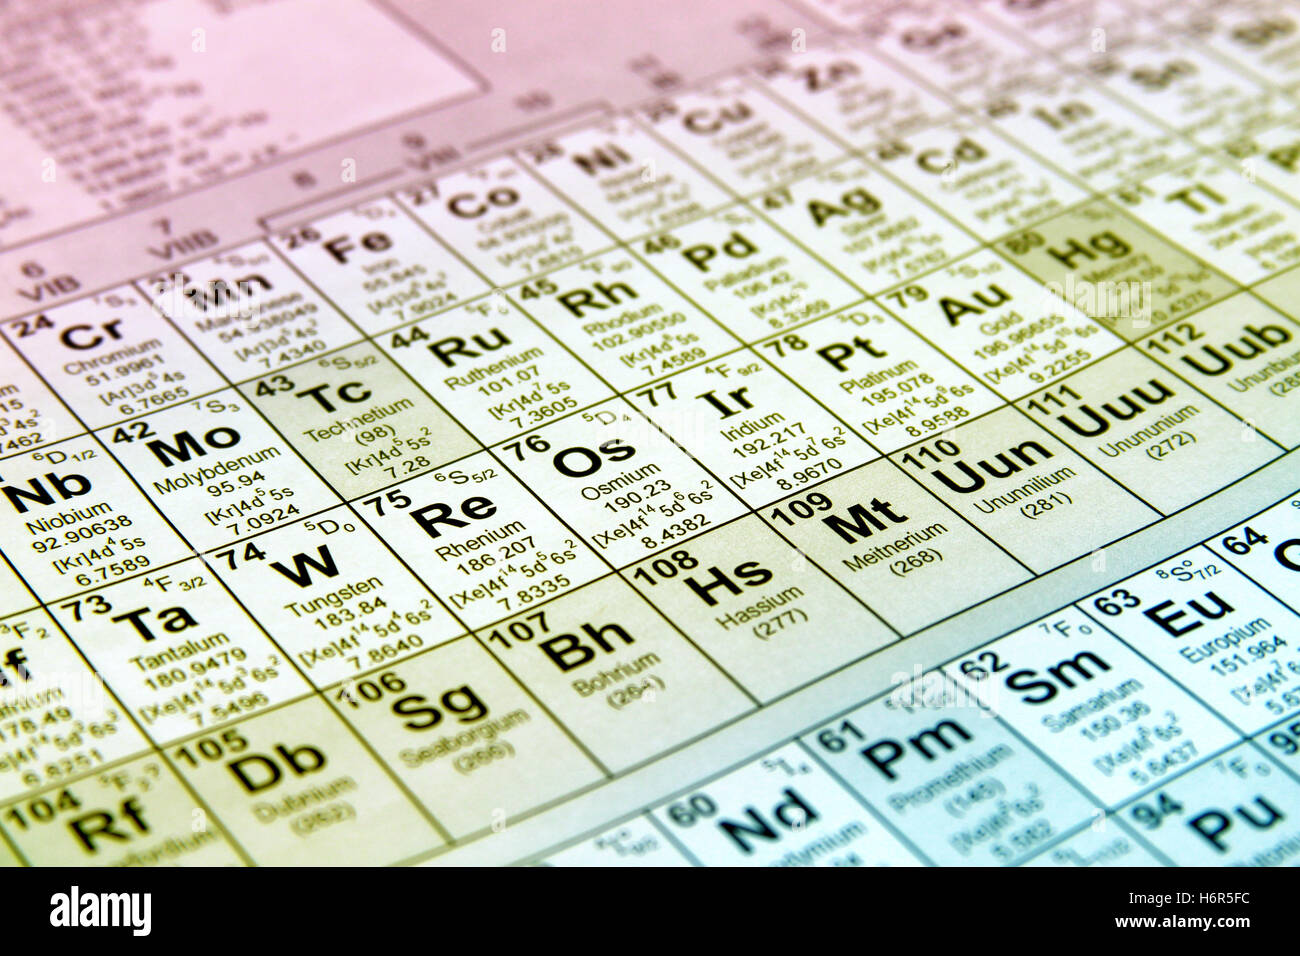 Chemical symbols stock photos chemical symbols stock images alamy experiment colour science atom element symbols period chemistry number biology chemical color scientific atomic stock buycottarizona